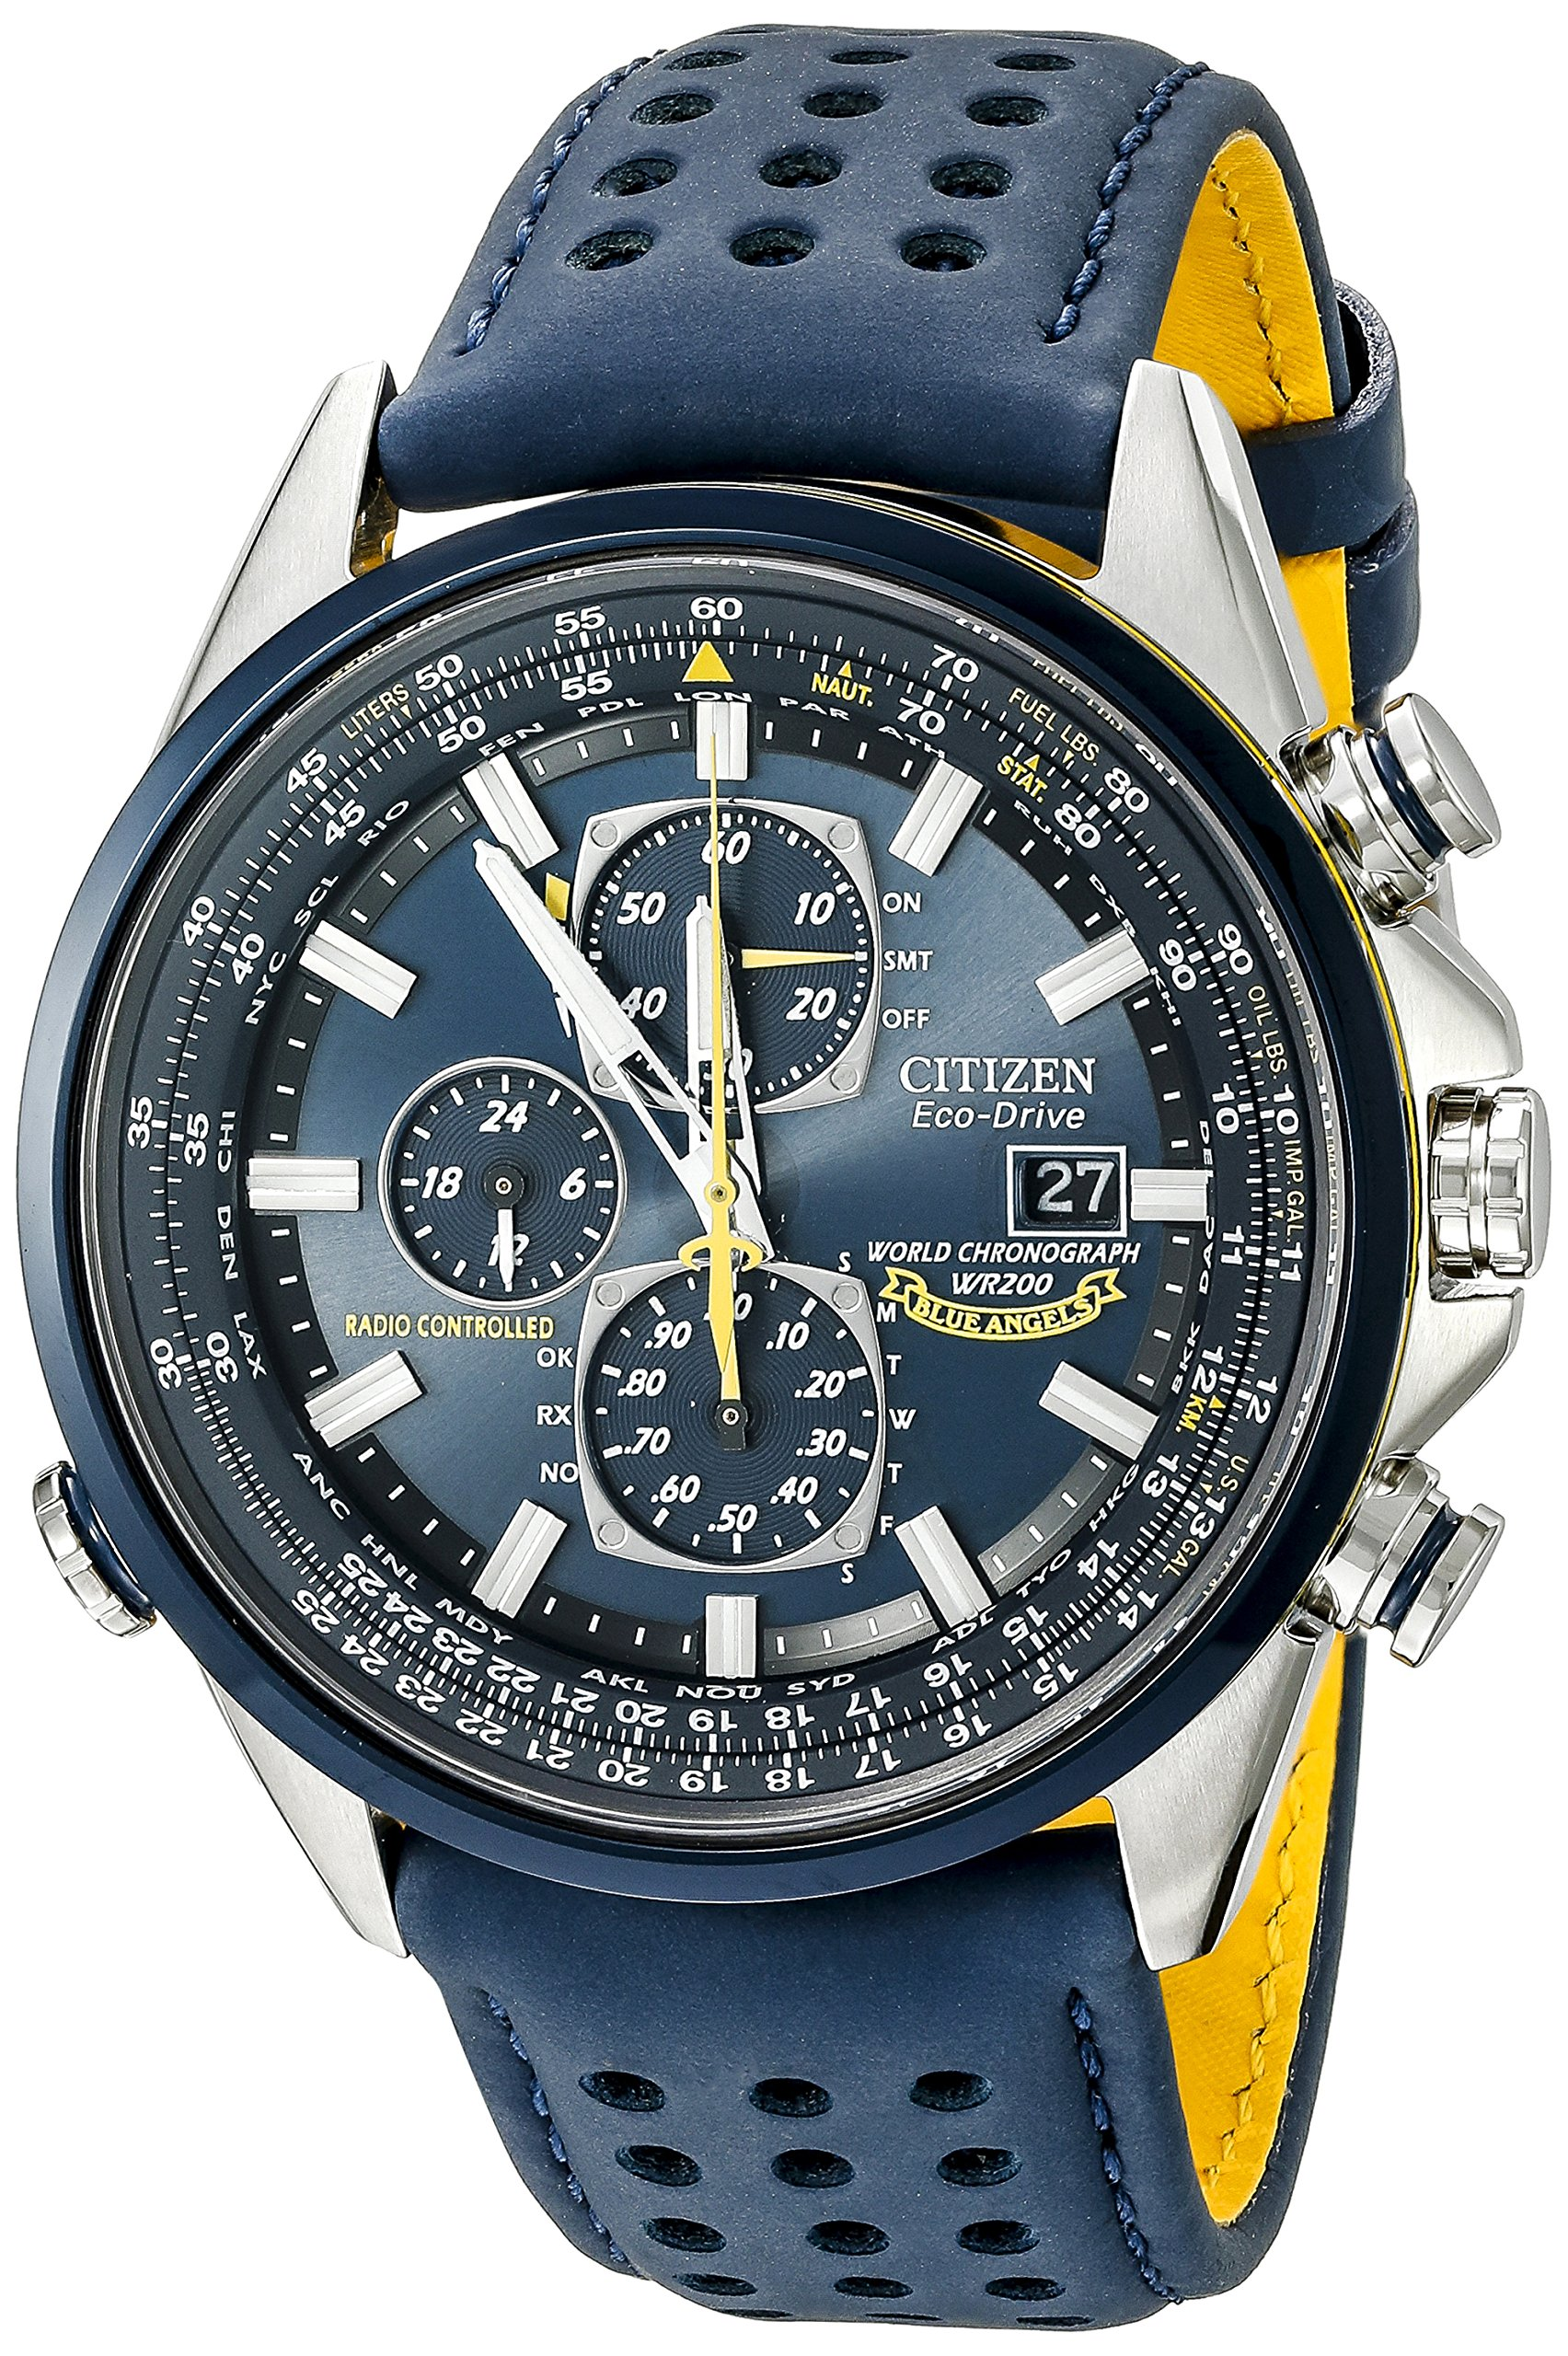 Citizen Eco Drive Chronograph Timekeeping AT8020 03L